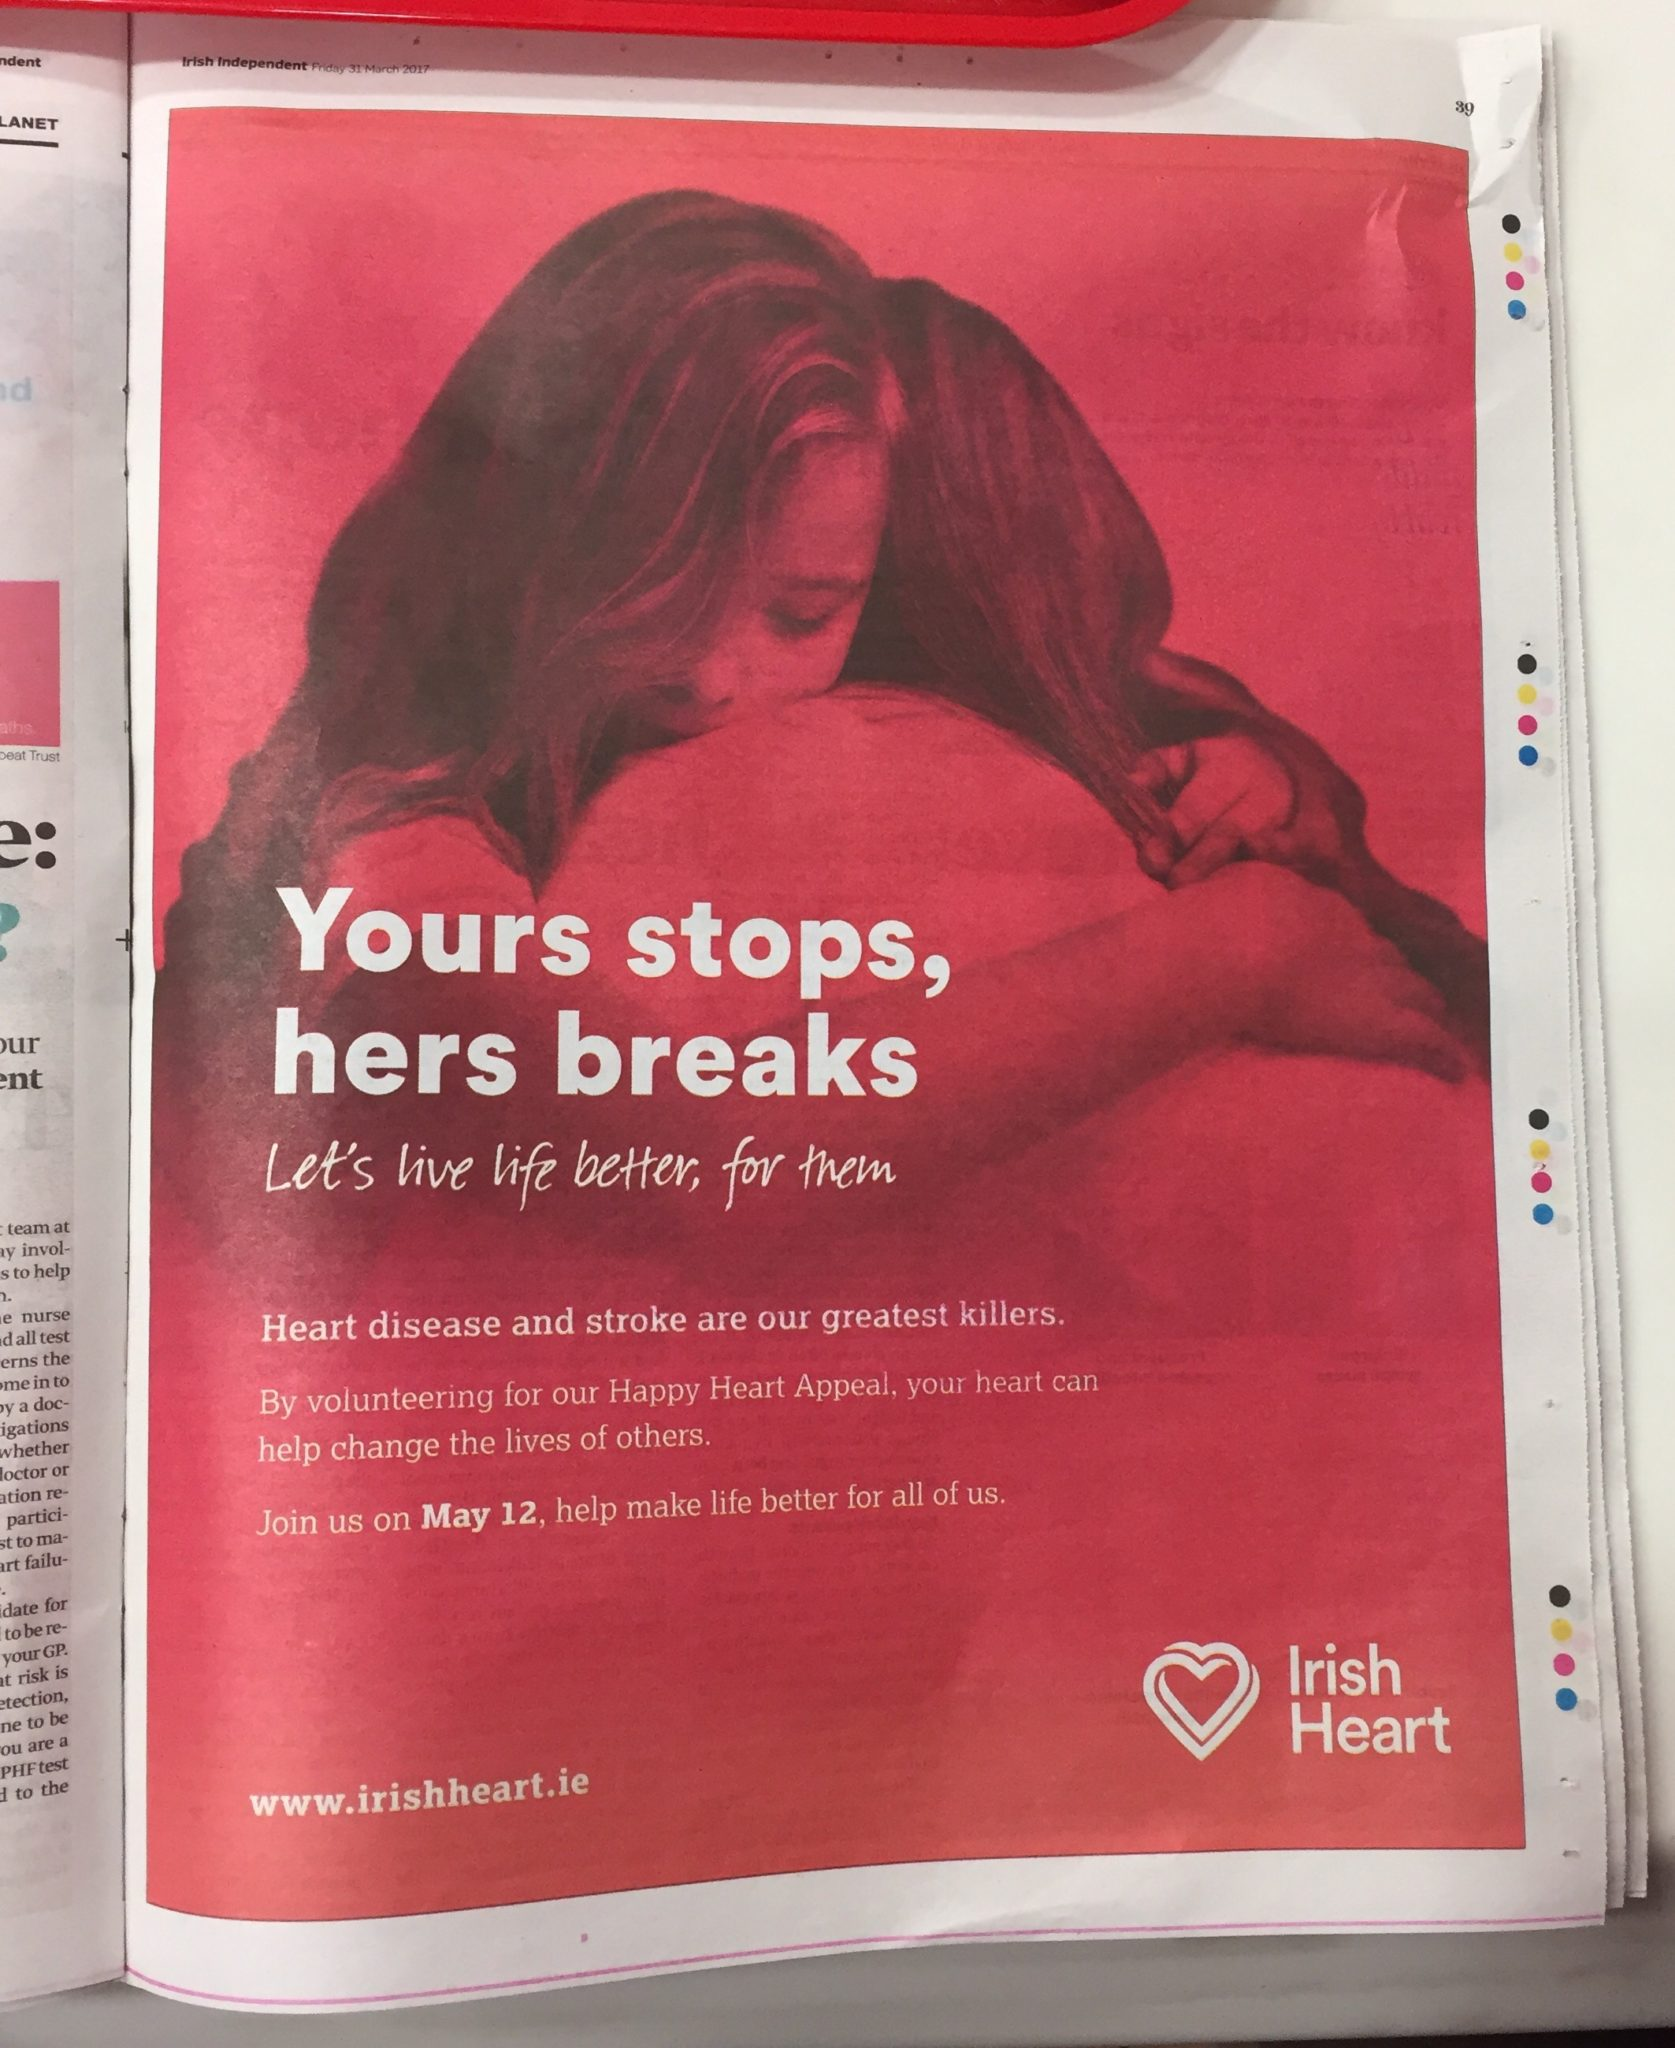 Irish Heart – yours stops, hers breaks